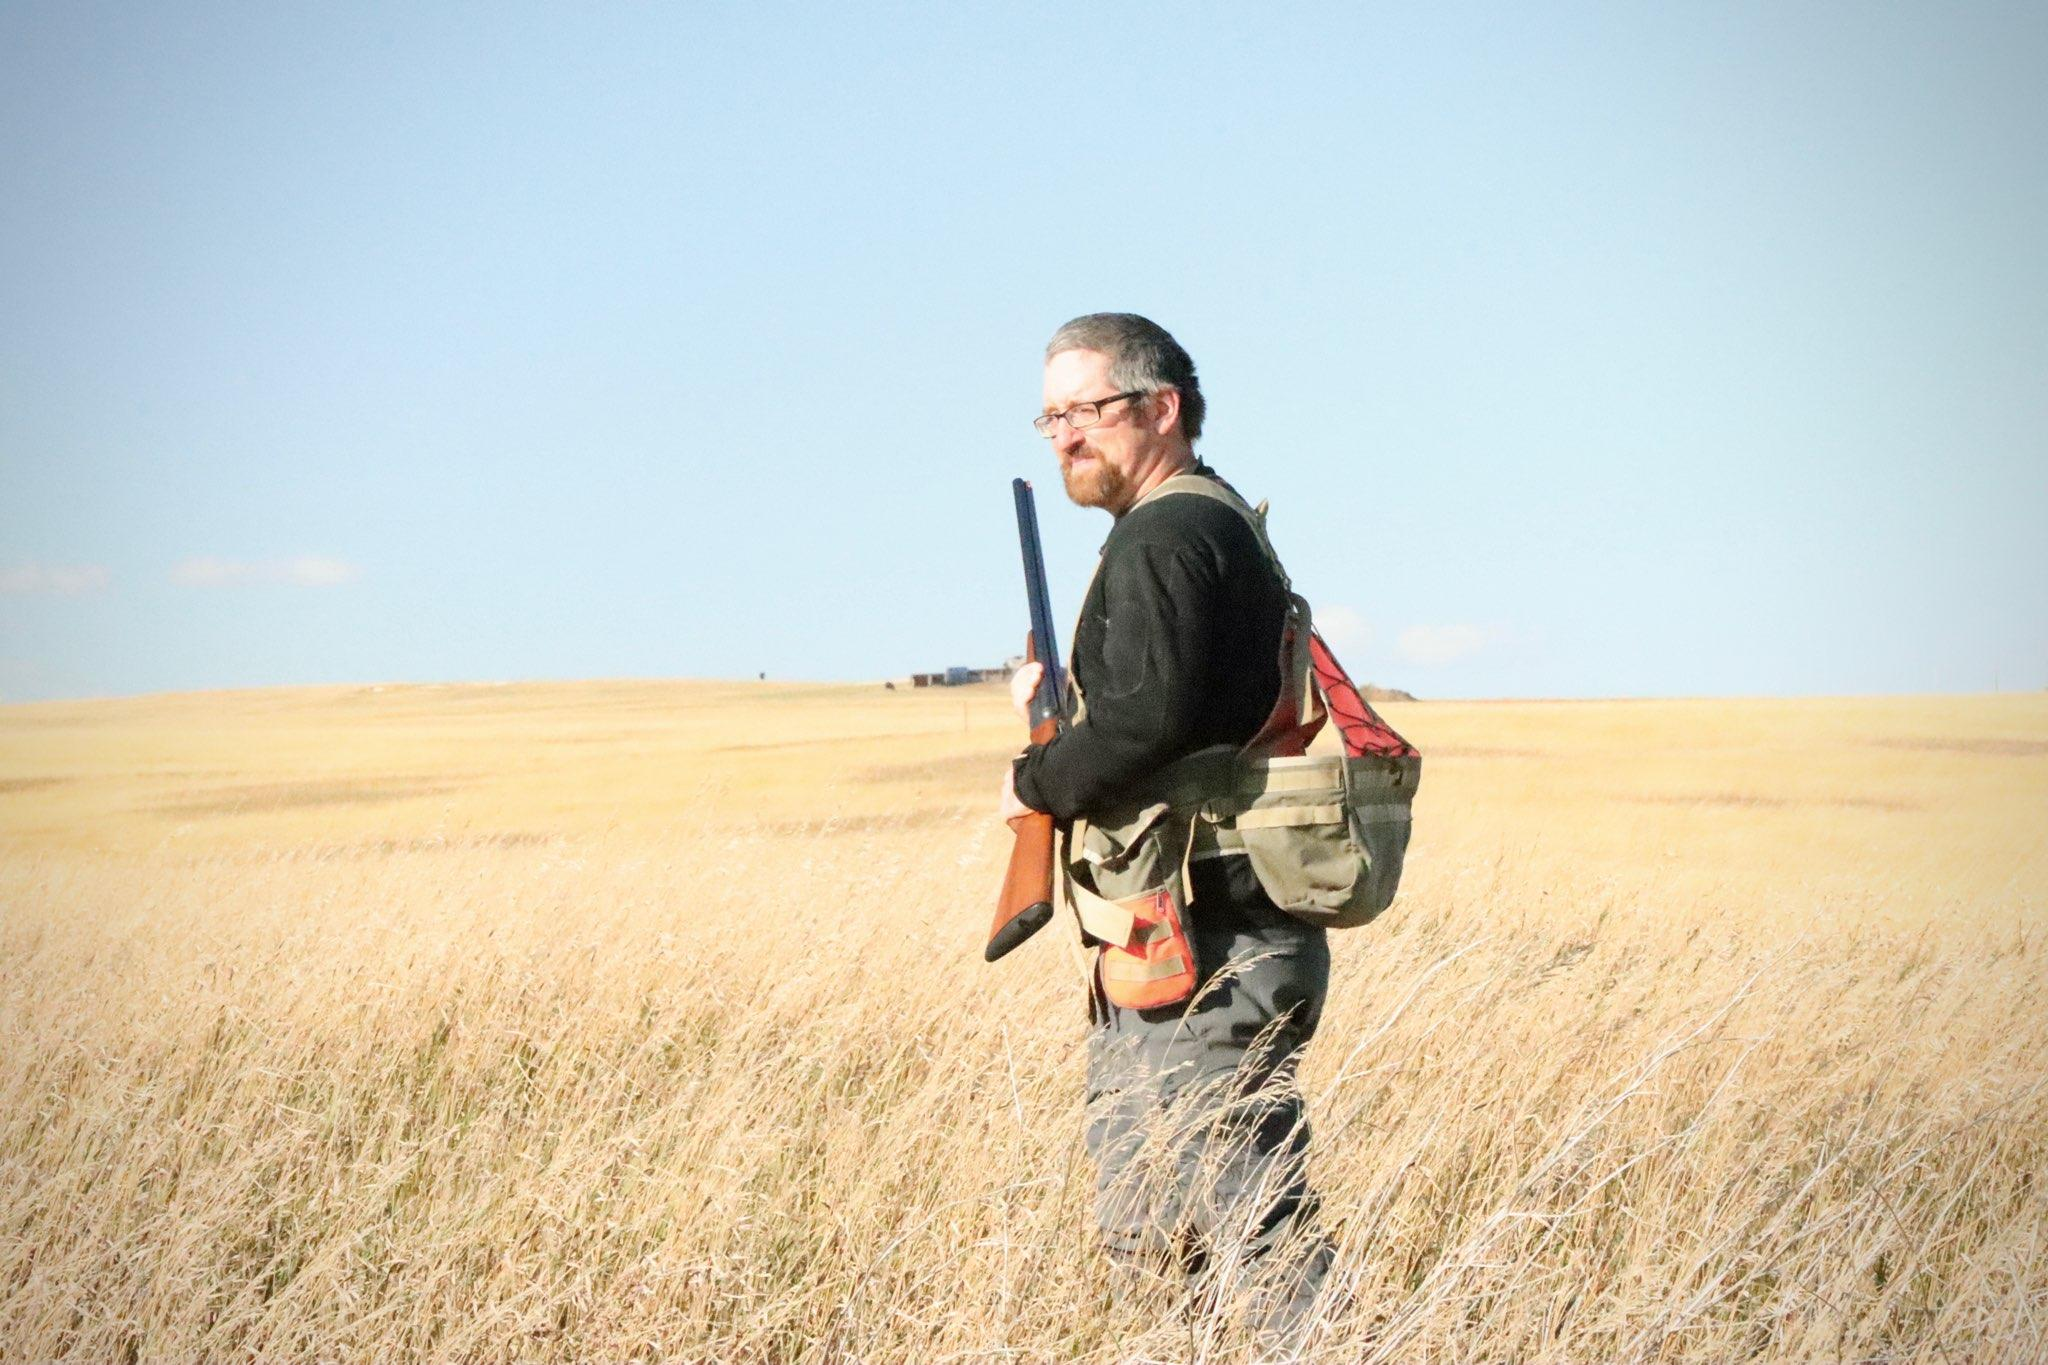 The Final Rise vest is suited for all forms of upland hunting from backpack hunts to traditional pheasant pushes.